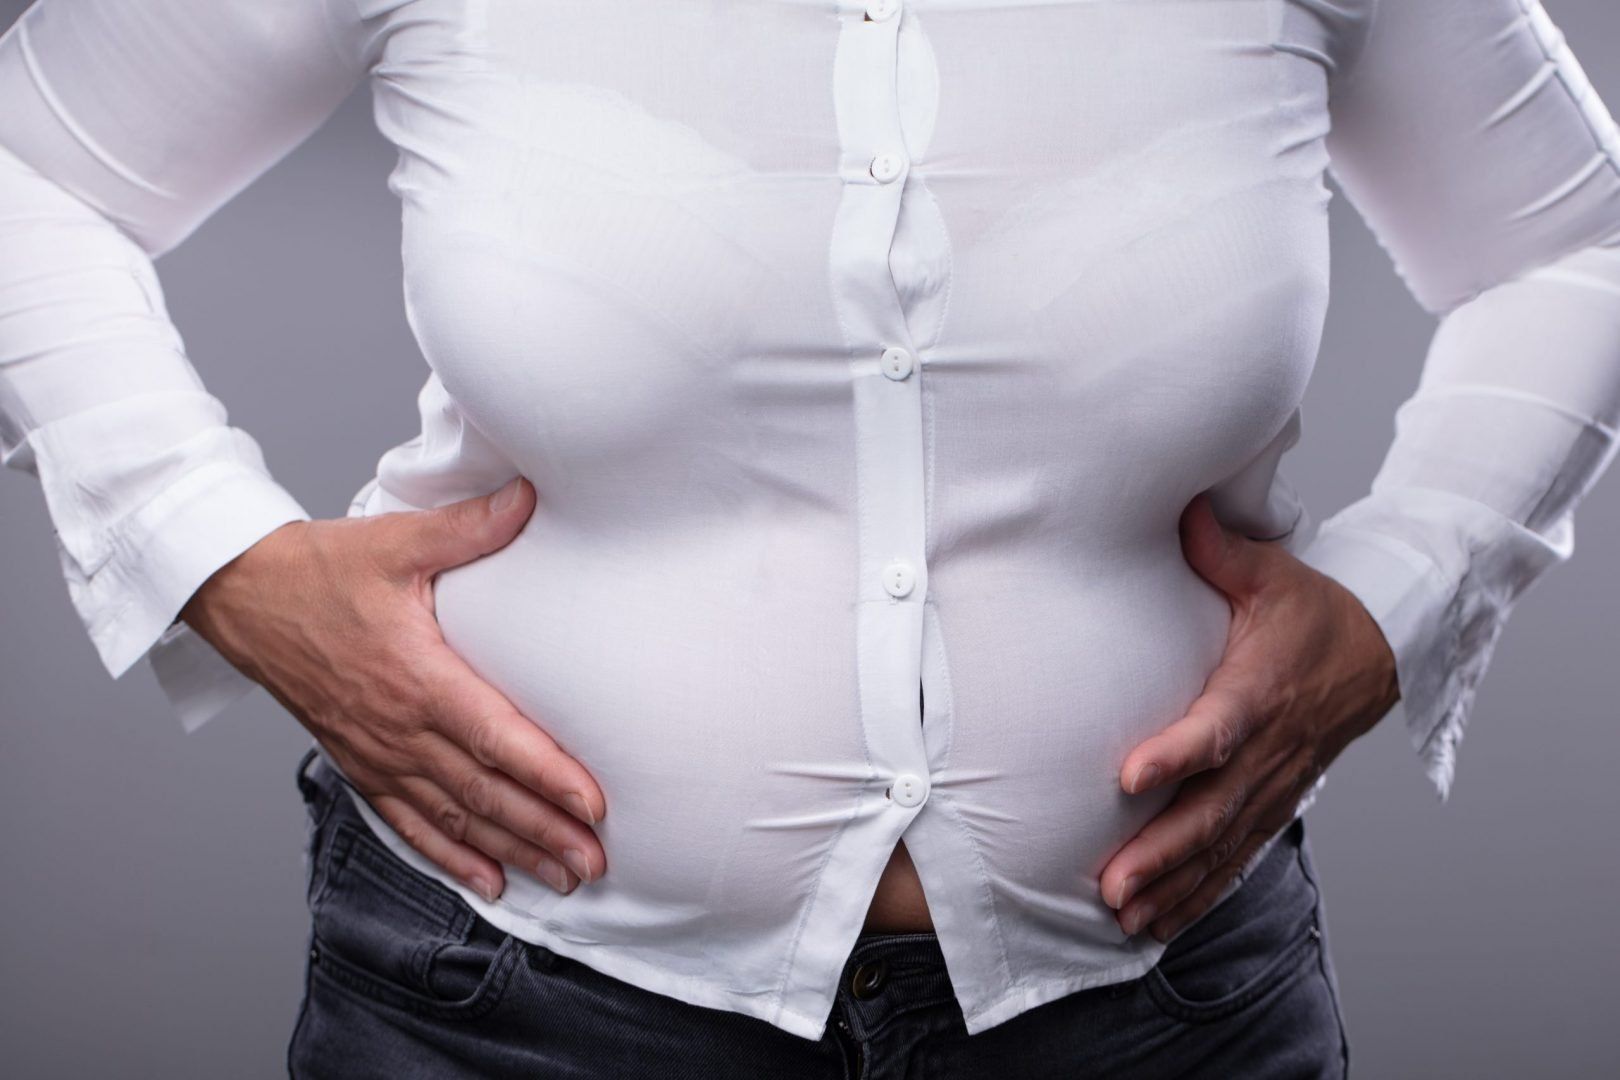 Abdominal Fat Gain Tied to Heart Disease Risk in Menopause